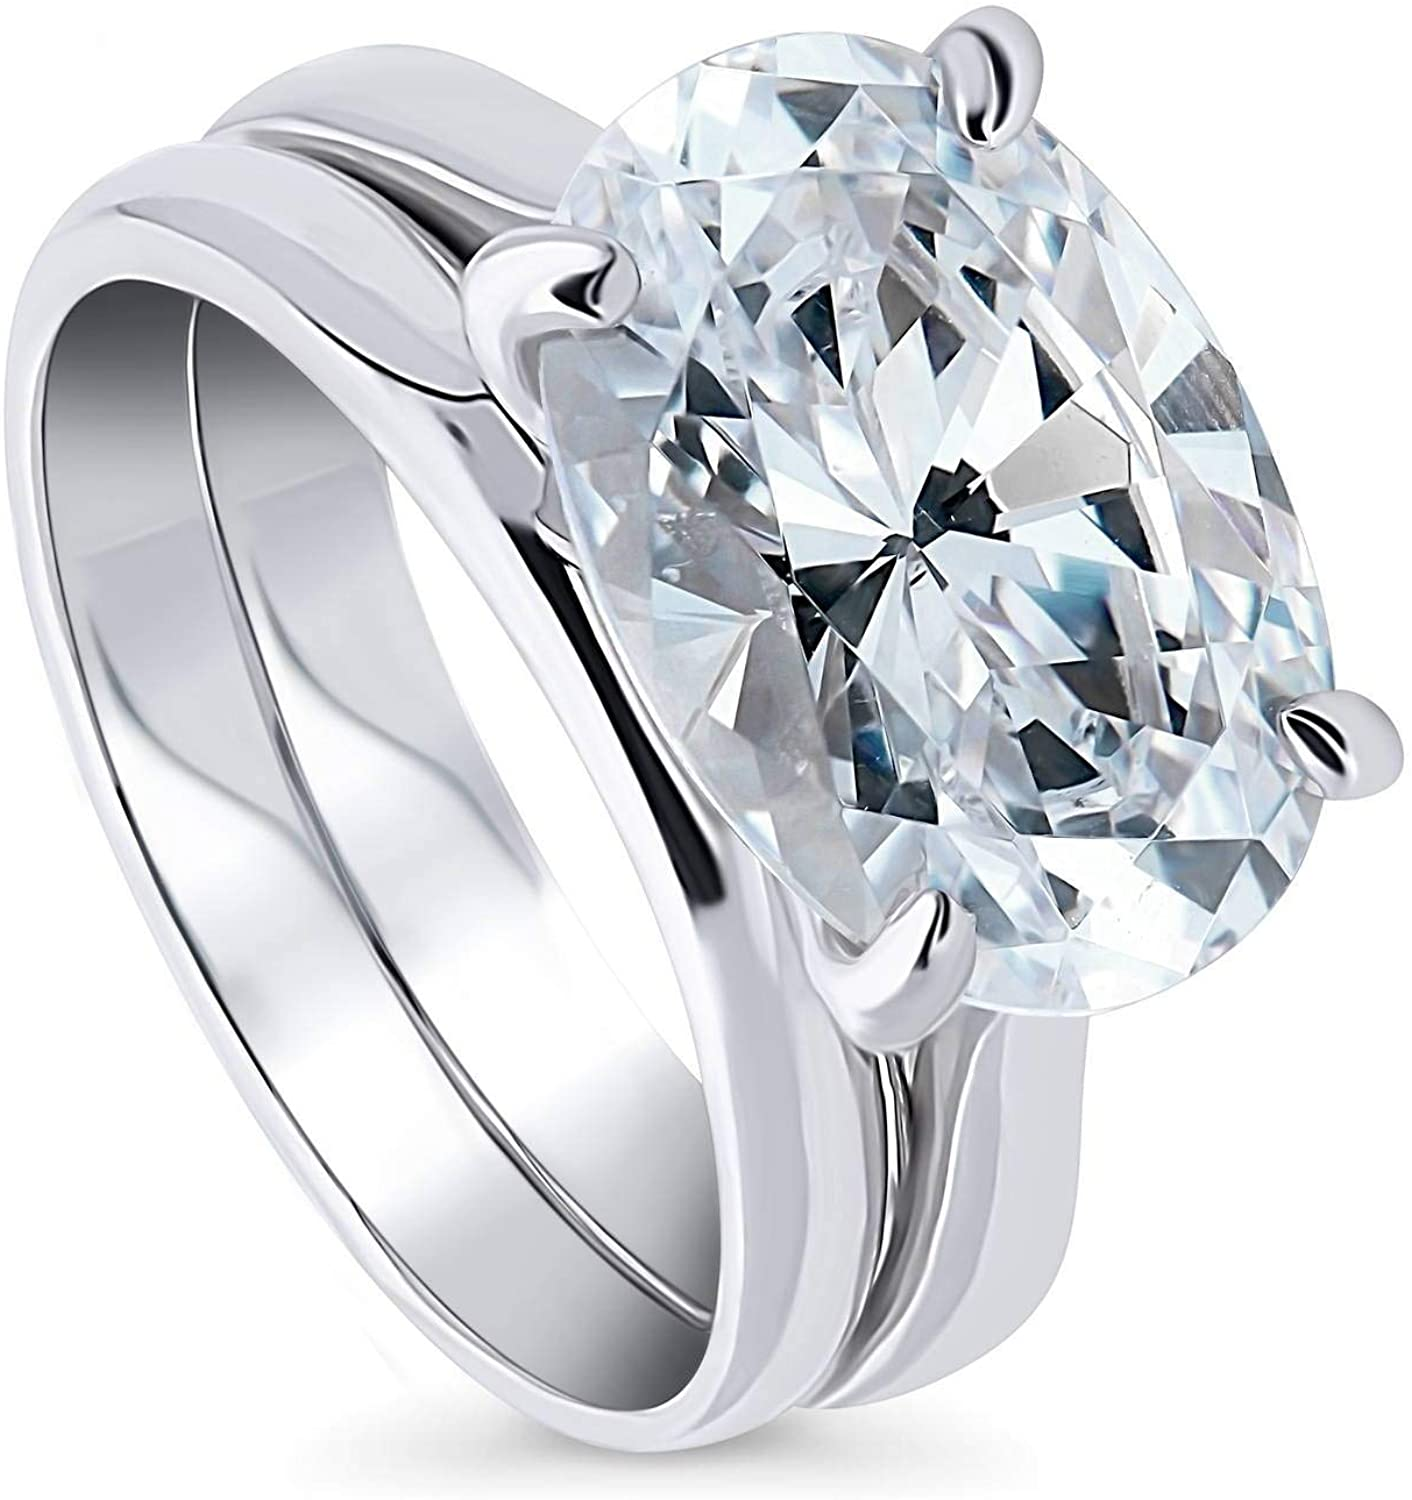 BERRICLE Rhodium Plated Sterling Silver Oval Cut Cubic Zirconia CZ East-West Solitaire Engagement Wedding Ring Set 5.5 CTW